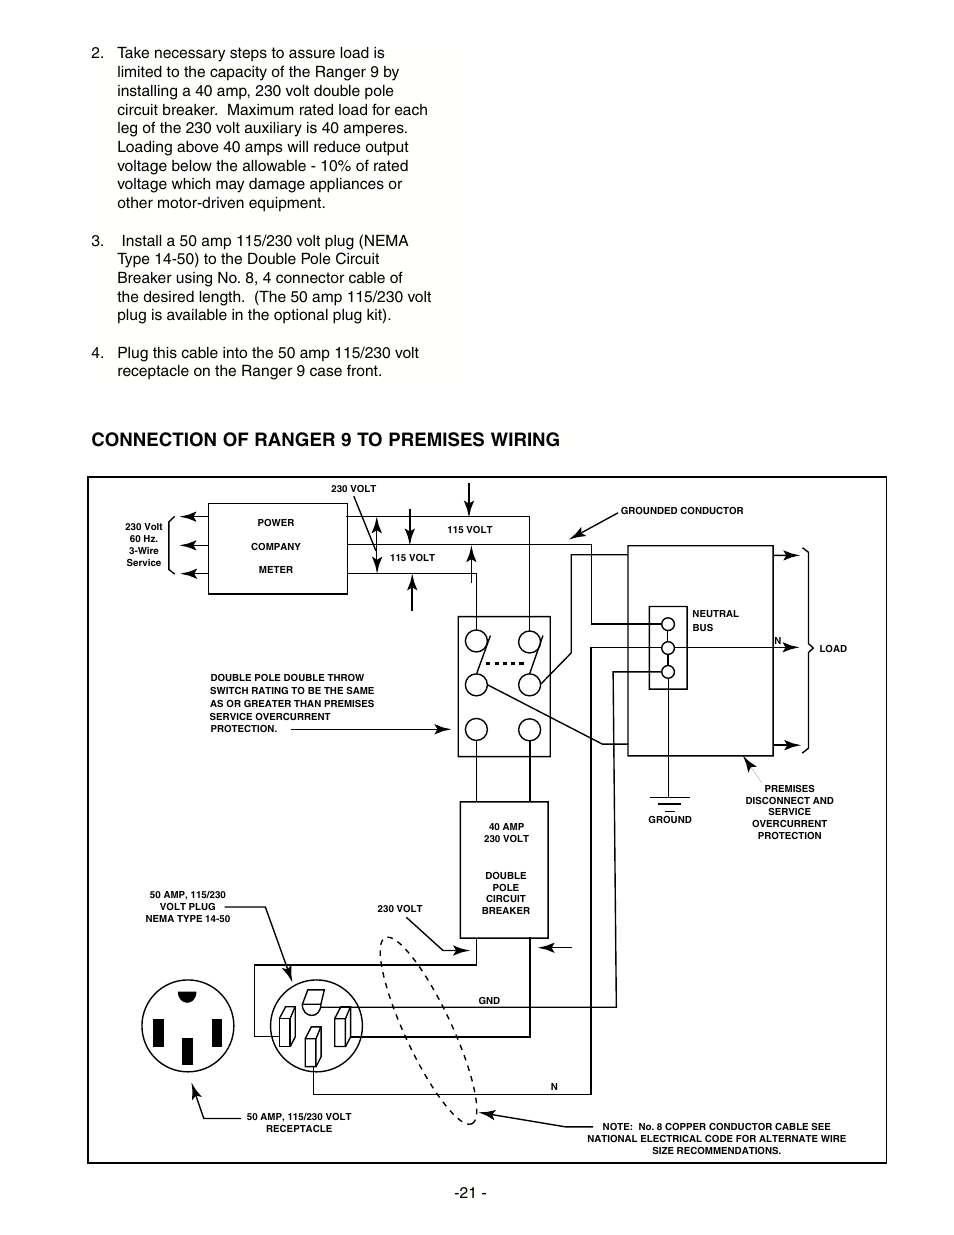 hight resolution of connection of ranger 9 to premises wiring lincoln electric im511 ranger 9 user manual